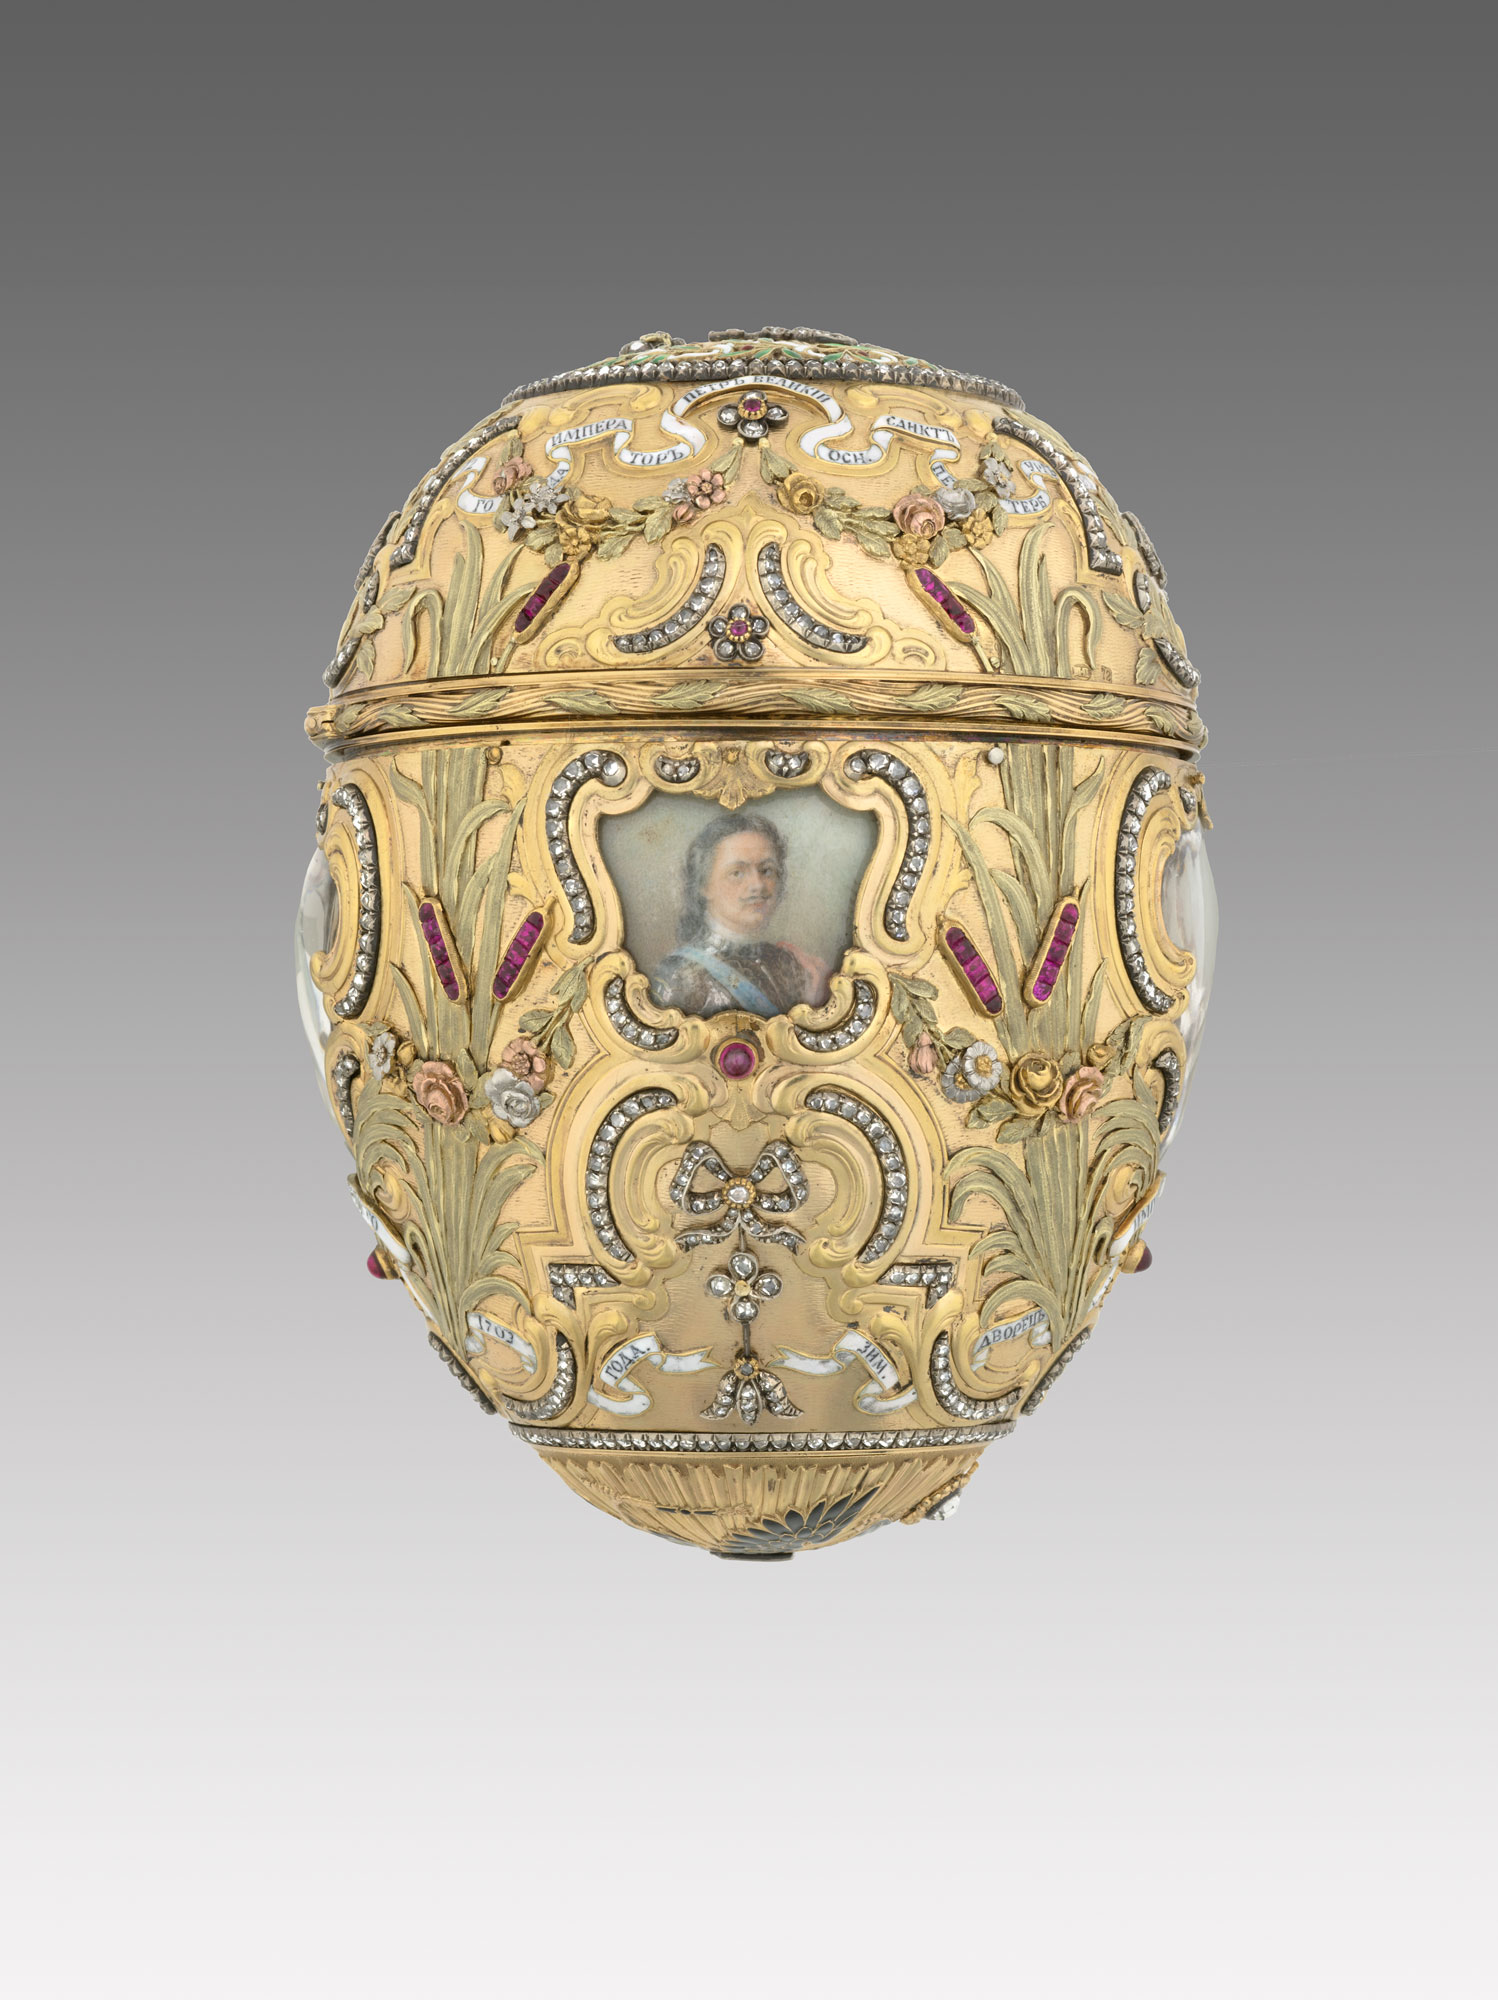 Carl Fabergé (1846–1920), Fabergé workshop, Mikhail Perkhin (workmaster).  Imperial Peter the Great Easter Egg , 1903. Egg: gold, platinum, silver gilt, diamonds, rubies, enamel, watercolor, ivory, rock crystal. Surprise: gilt bronze, sapphire. Egg: 12 x 7.9 cm, Surprise: 4.7 x 6.9 cm, Stand: 7.7 x 6.9 cm, Virginia Museum of Fine Arts, Bequest of Lillian Thomas Pratt. This was featured in  Faberge, Jeweller to the Czars  last year at the Montreal Museum of Fine Arts. (Photo courtesy The Montreal Museum of Fine Arts)